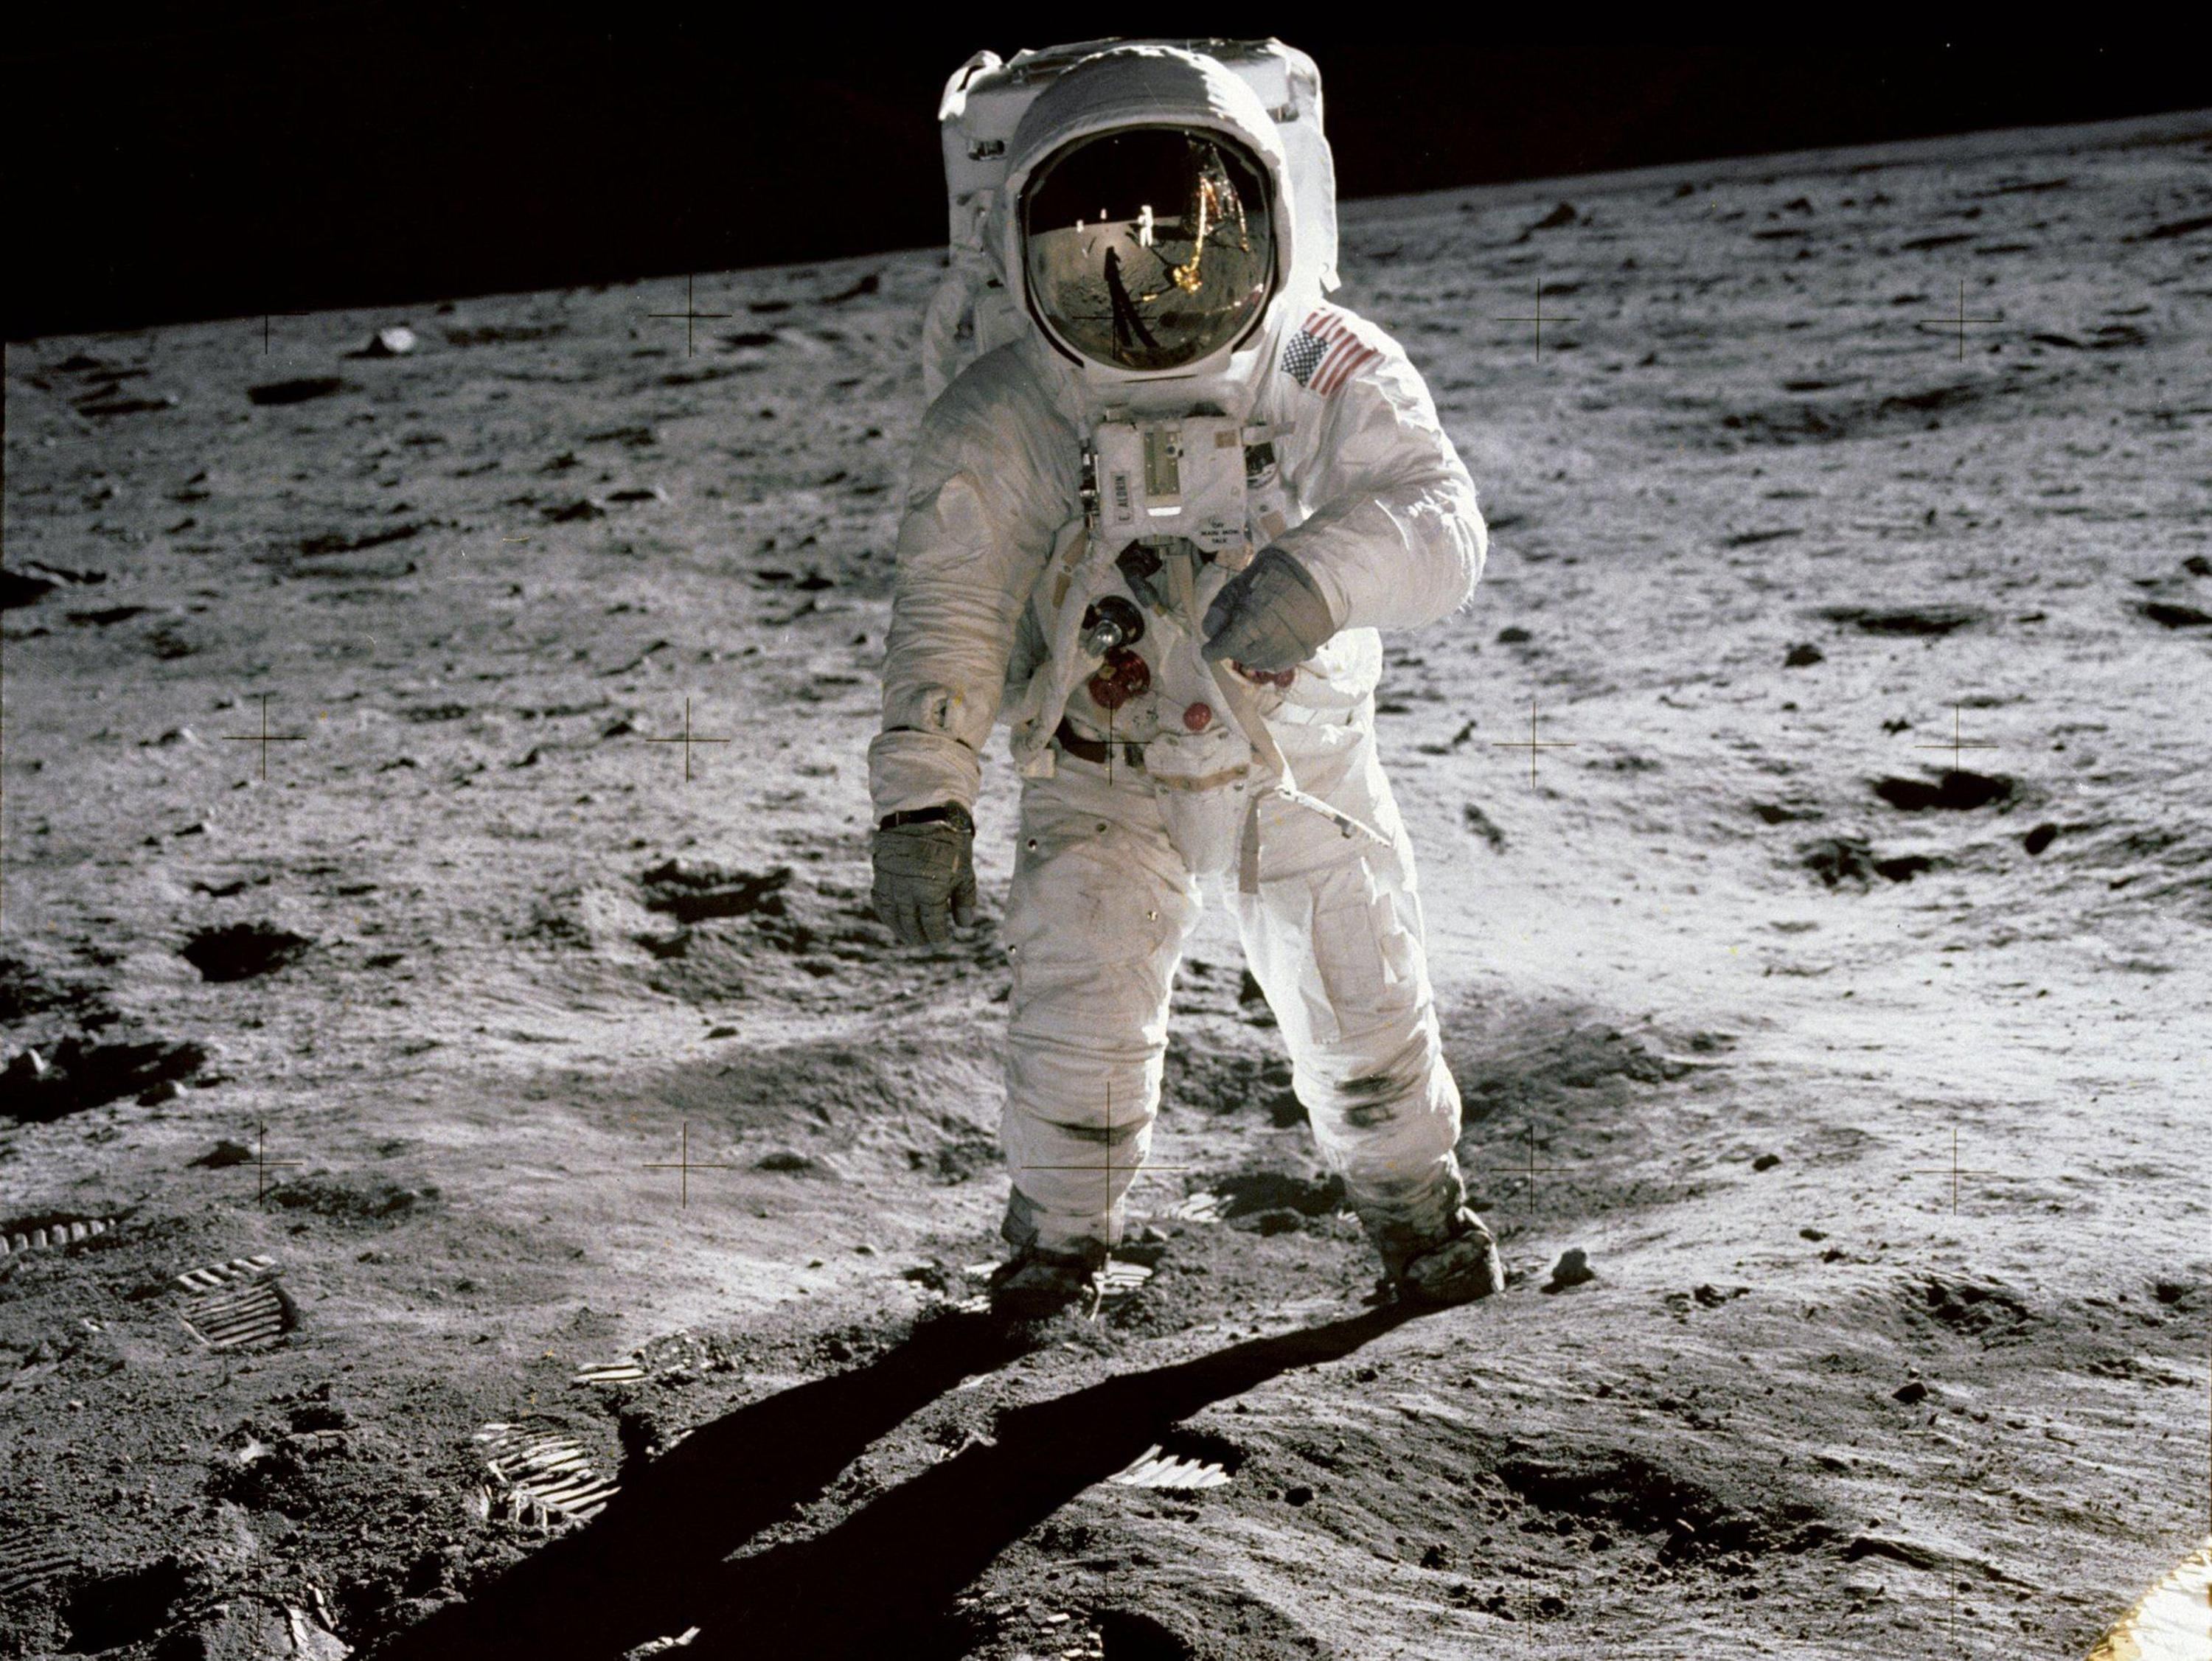 Iconic photo of Buzz Aldrin on the moon